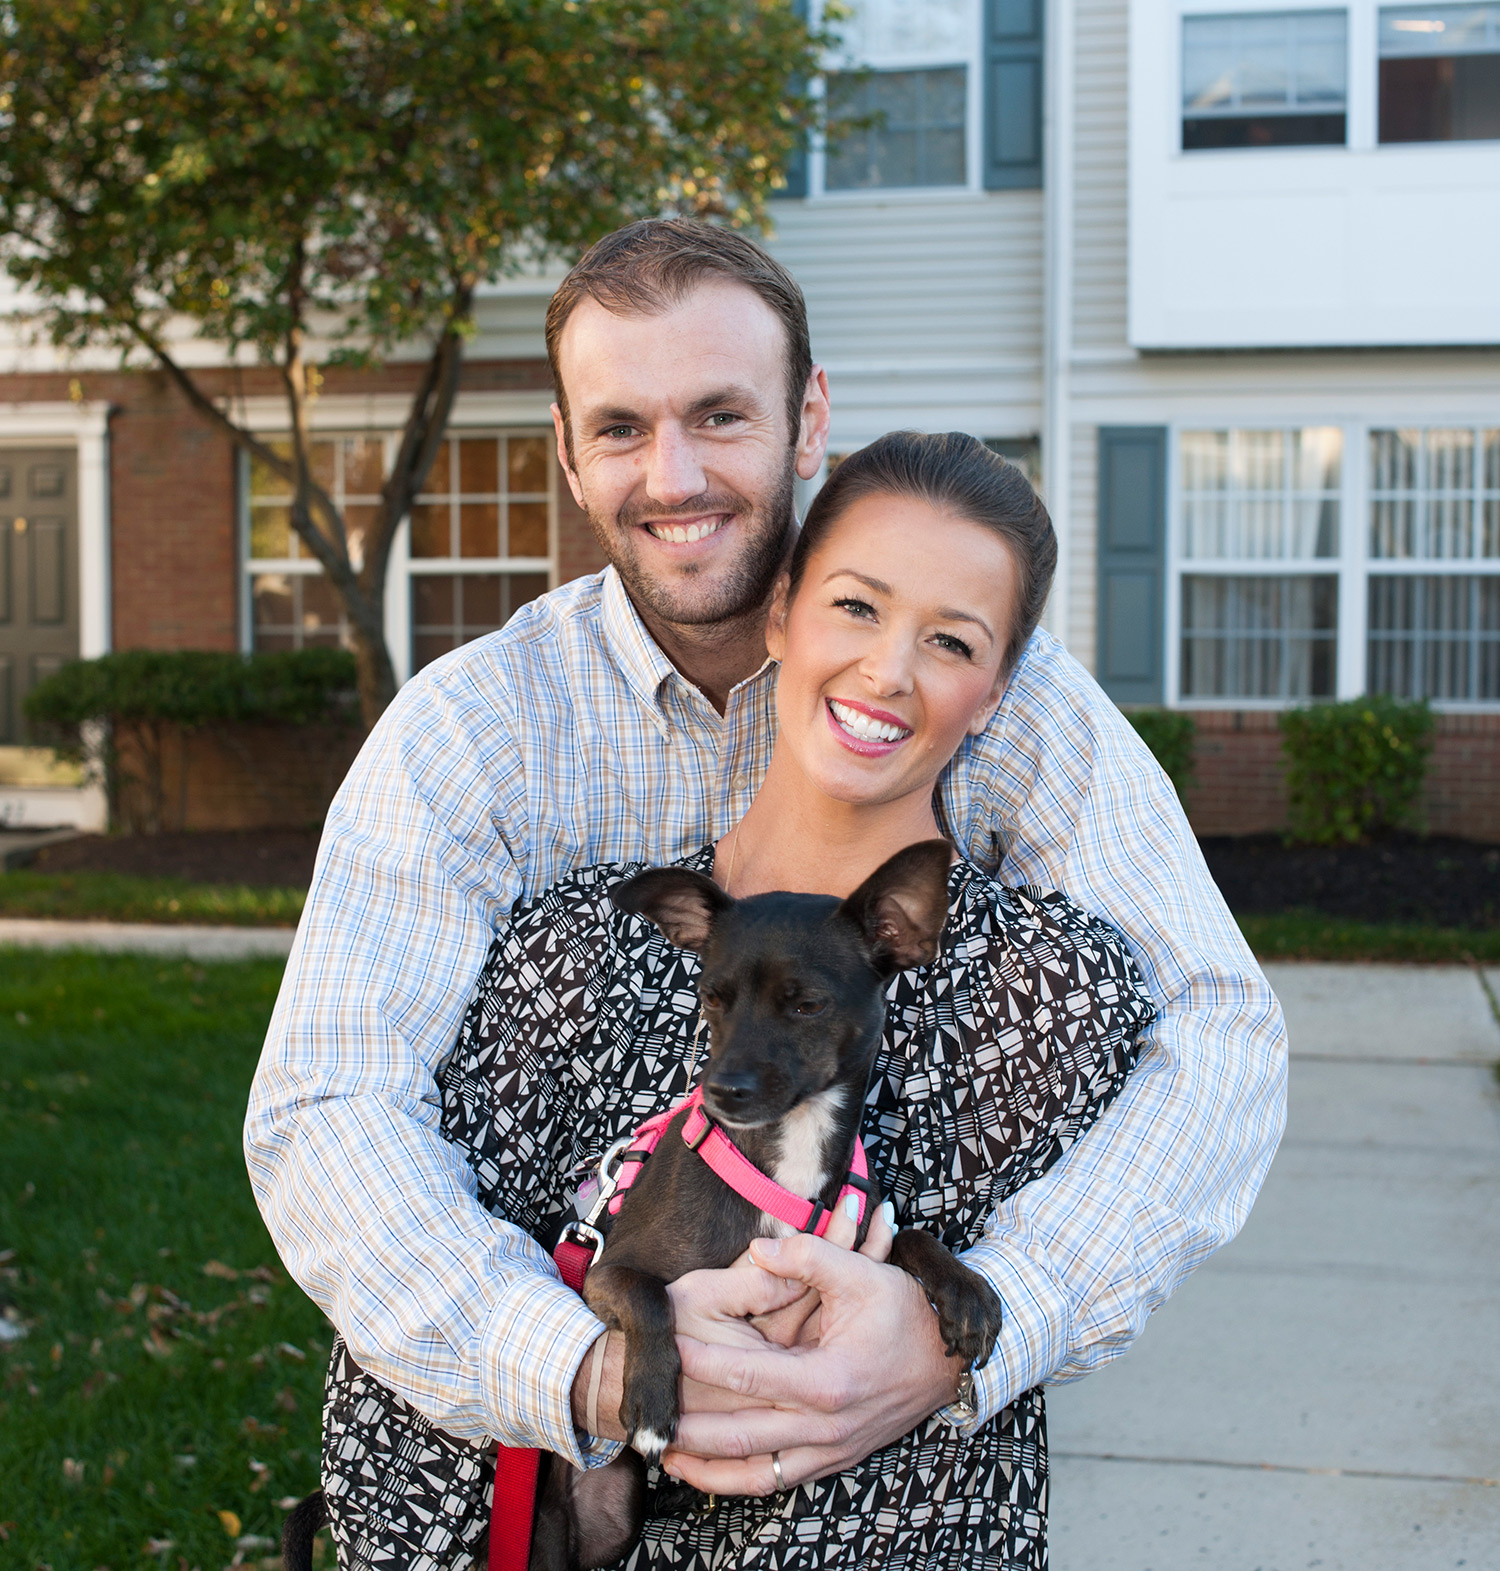 Married at First Sight's Jamie Otis and Doug Hehner